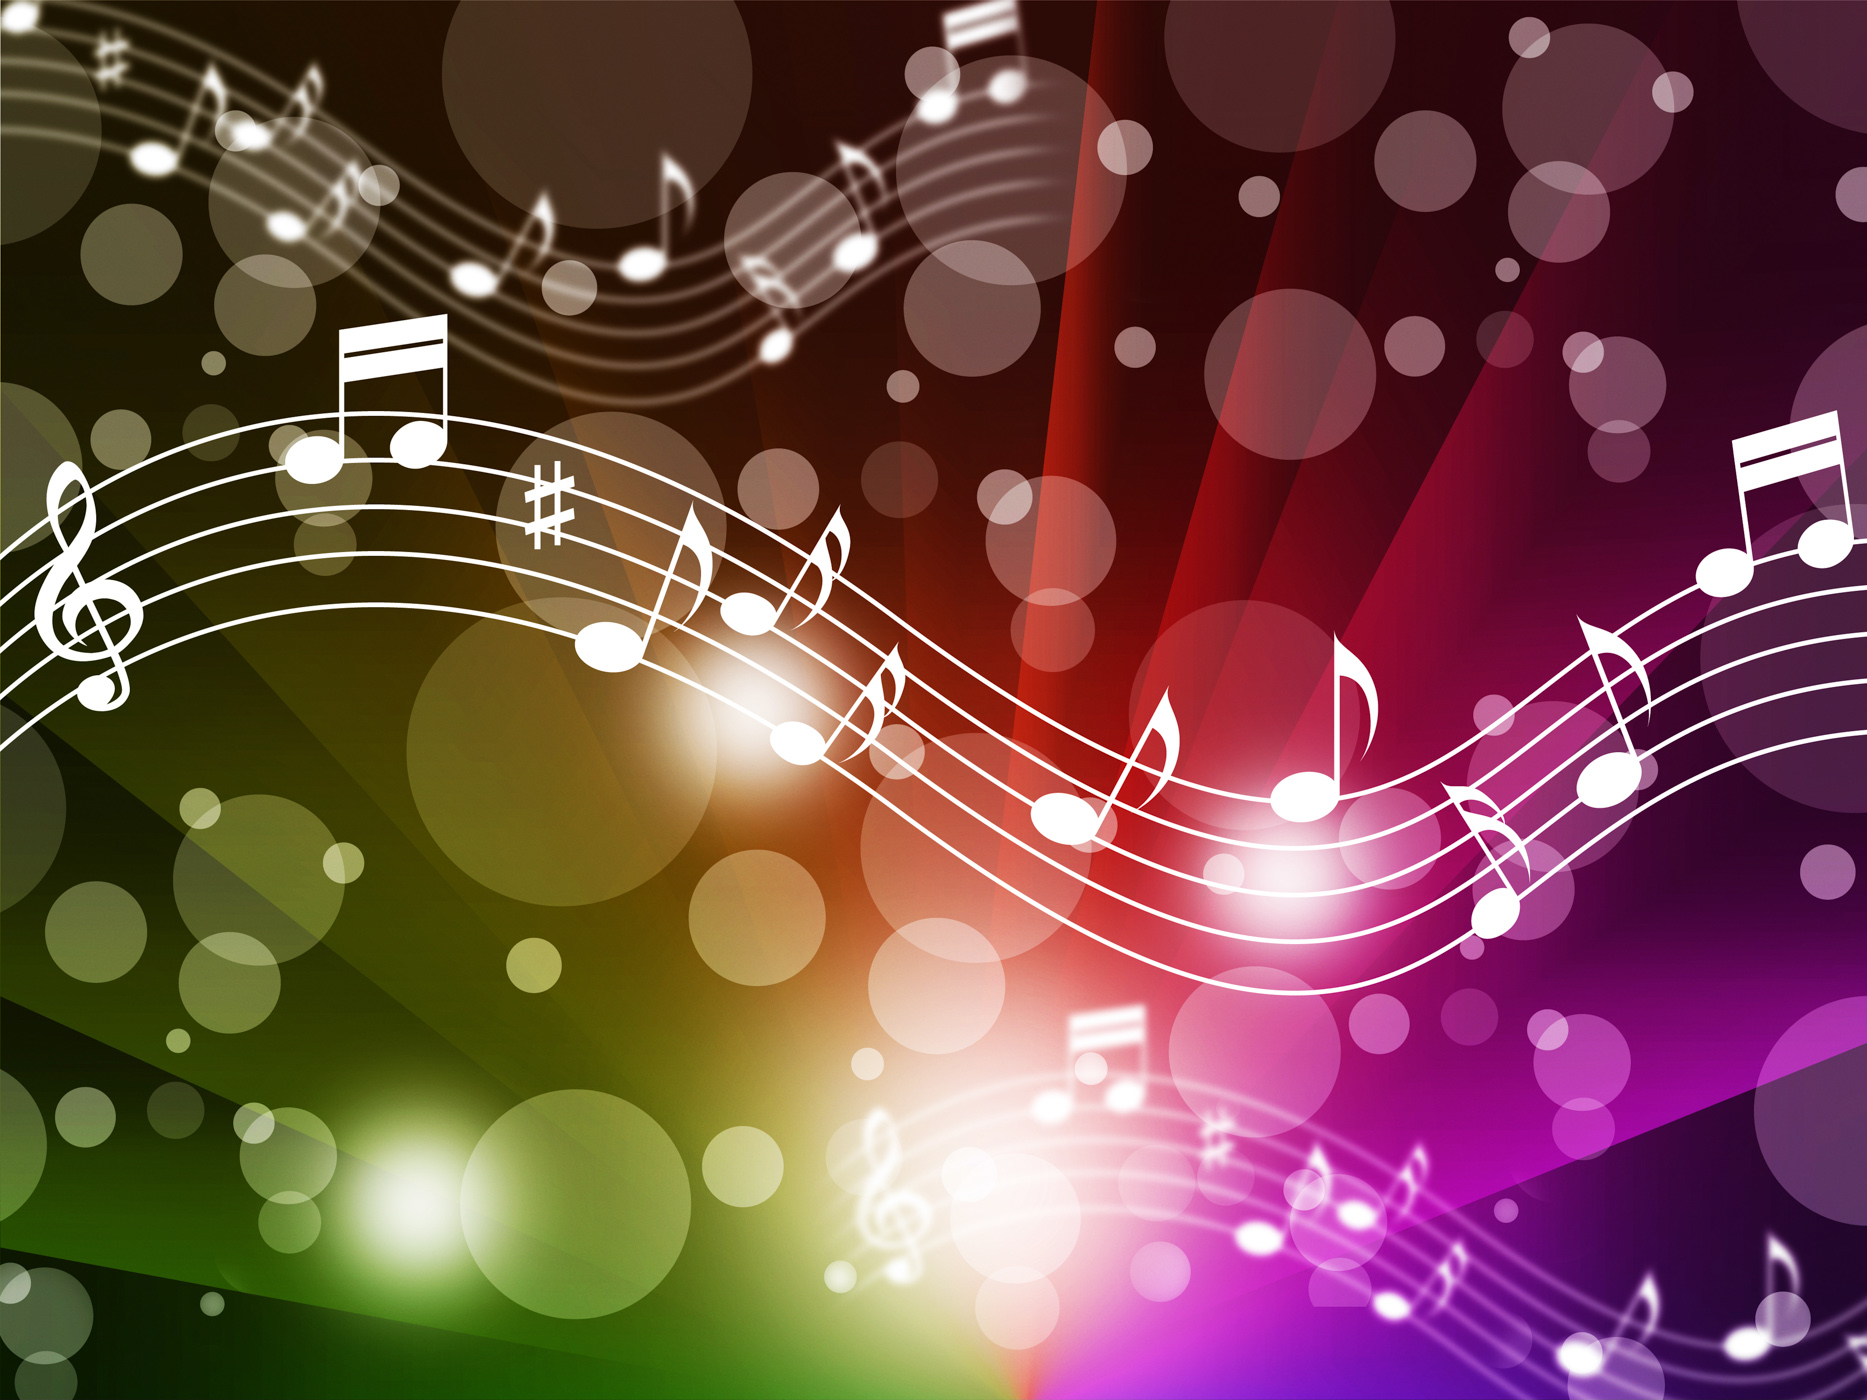 Music Background Meaning Singing Instruments And Notes, Tune, Piece, Sounds, Soul, HQ Photo